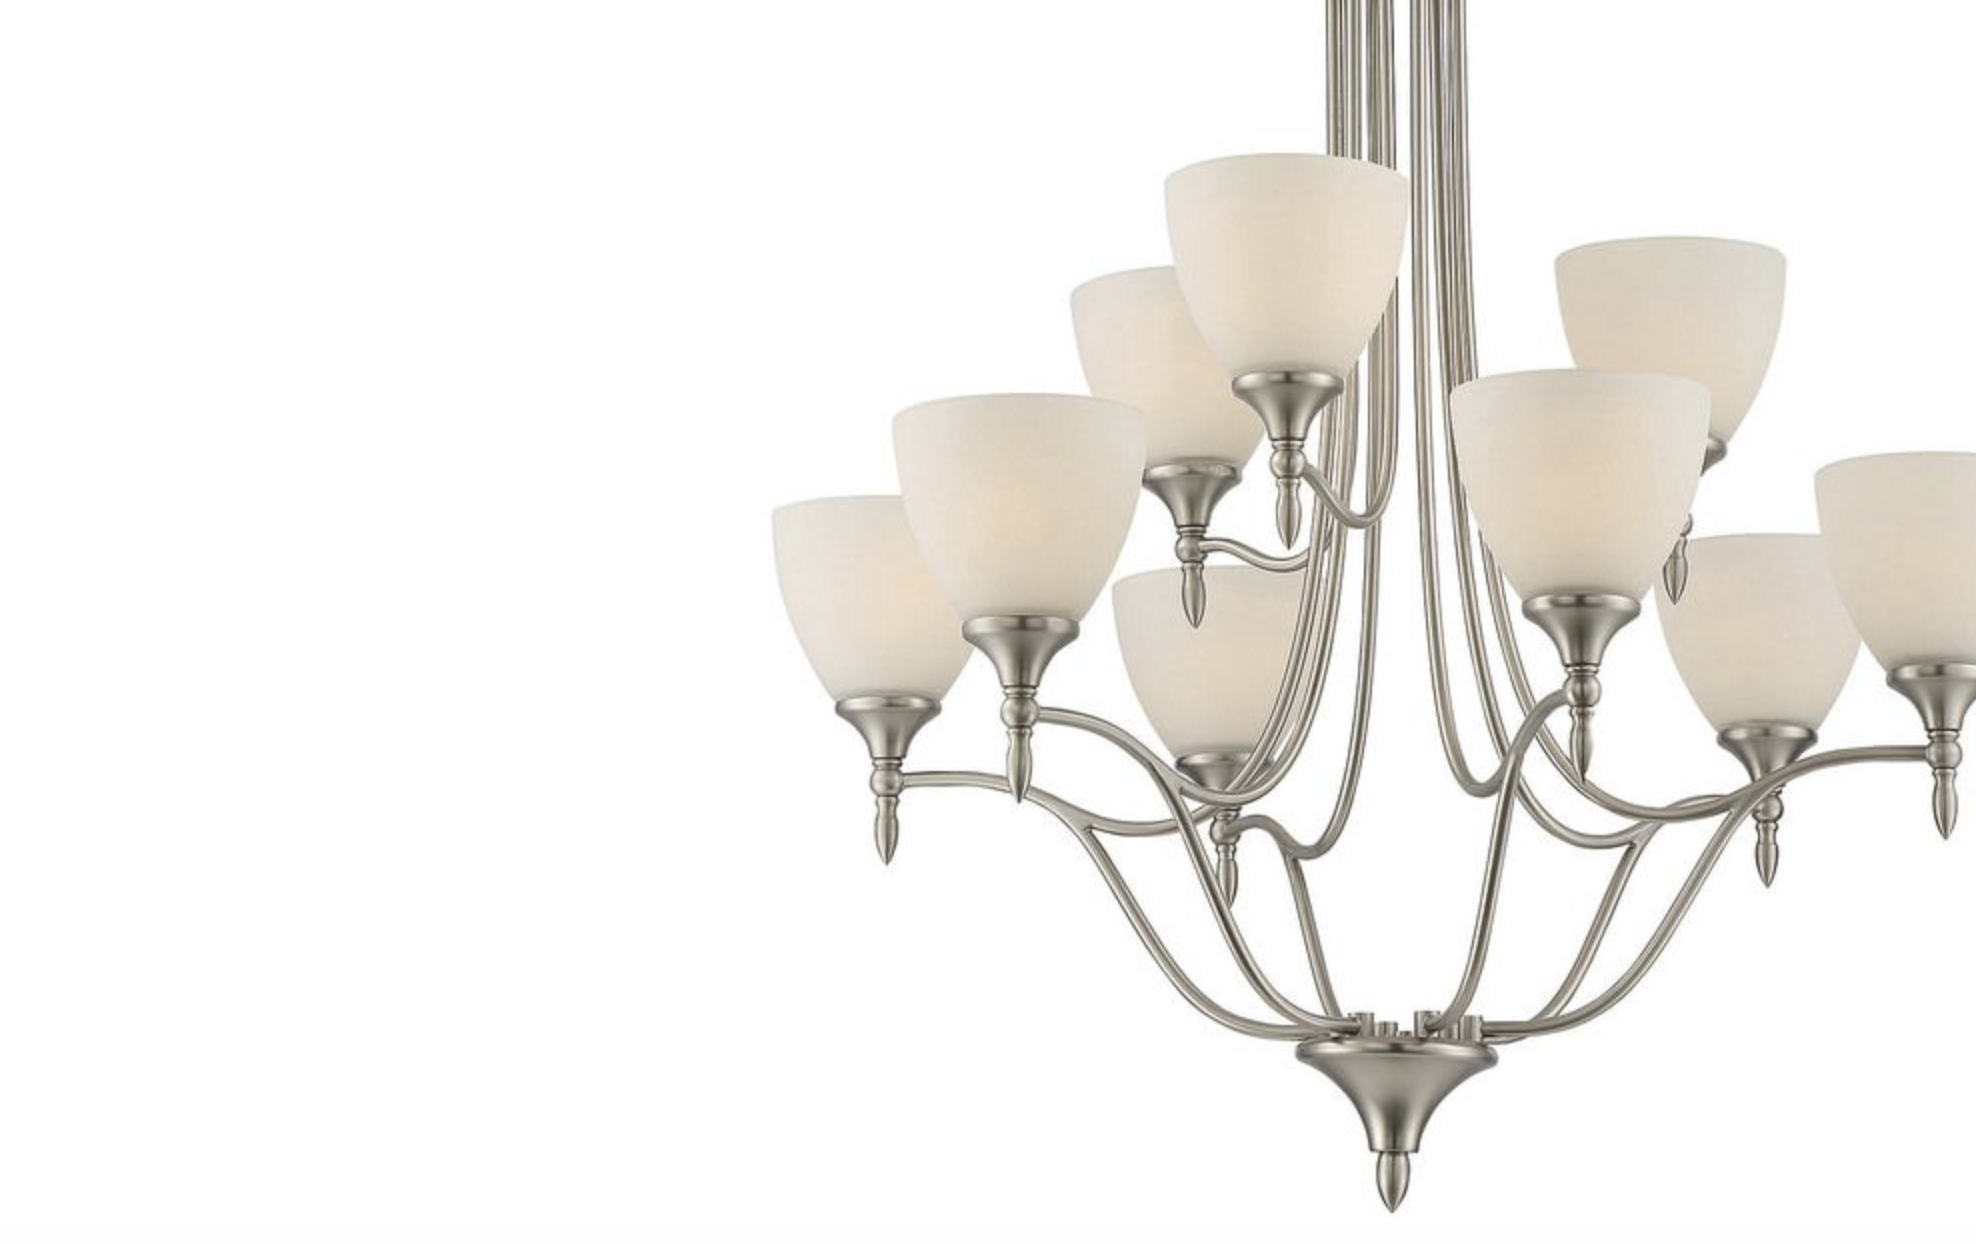 HERNDON SATIN NICKLE LIGHTING-furniture stores regina-Hunters Furniture